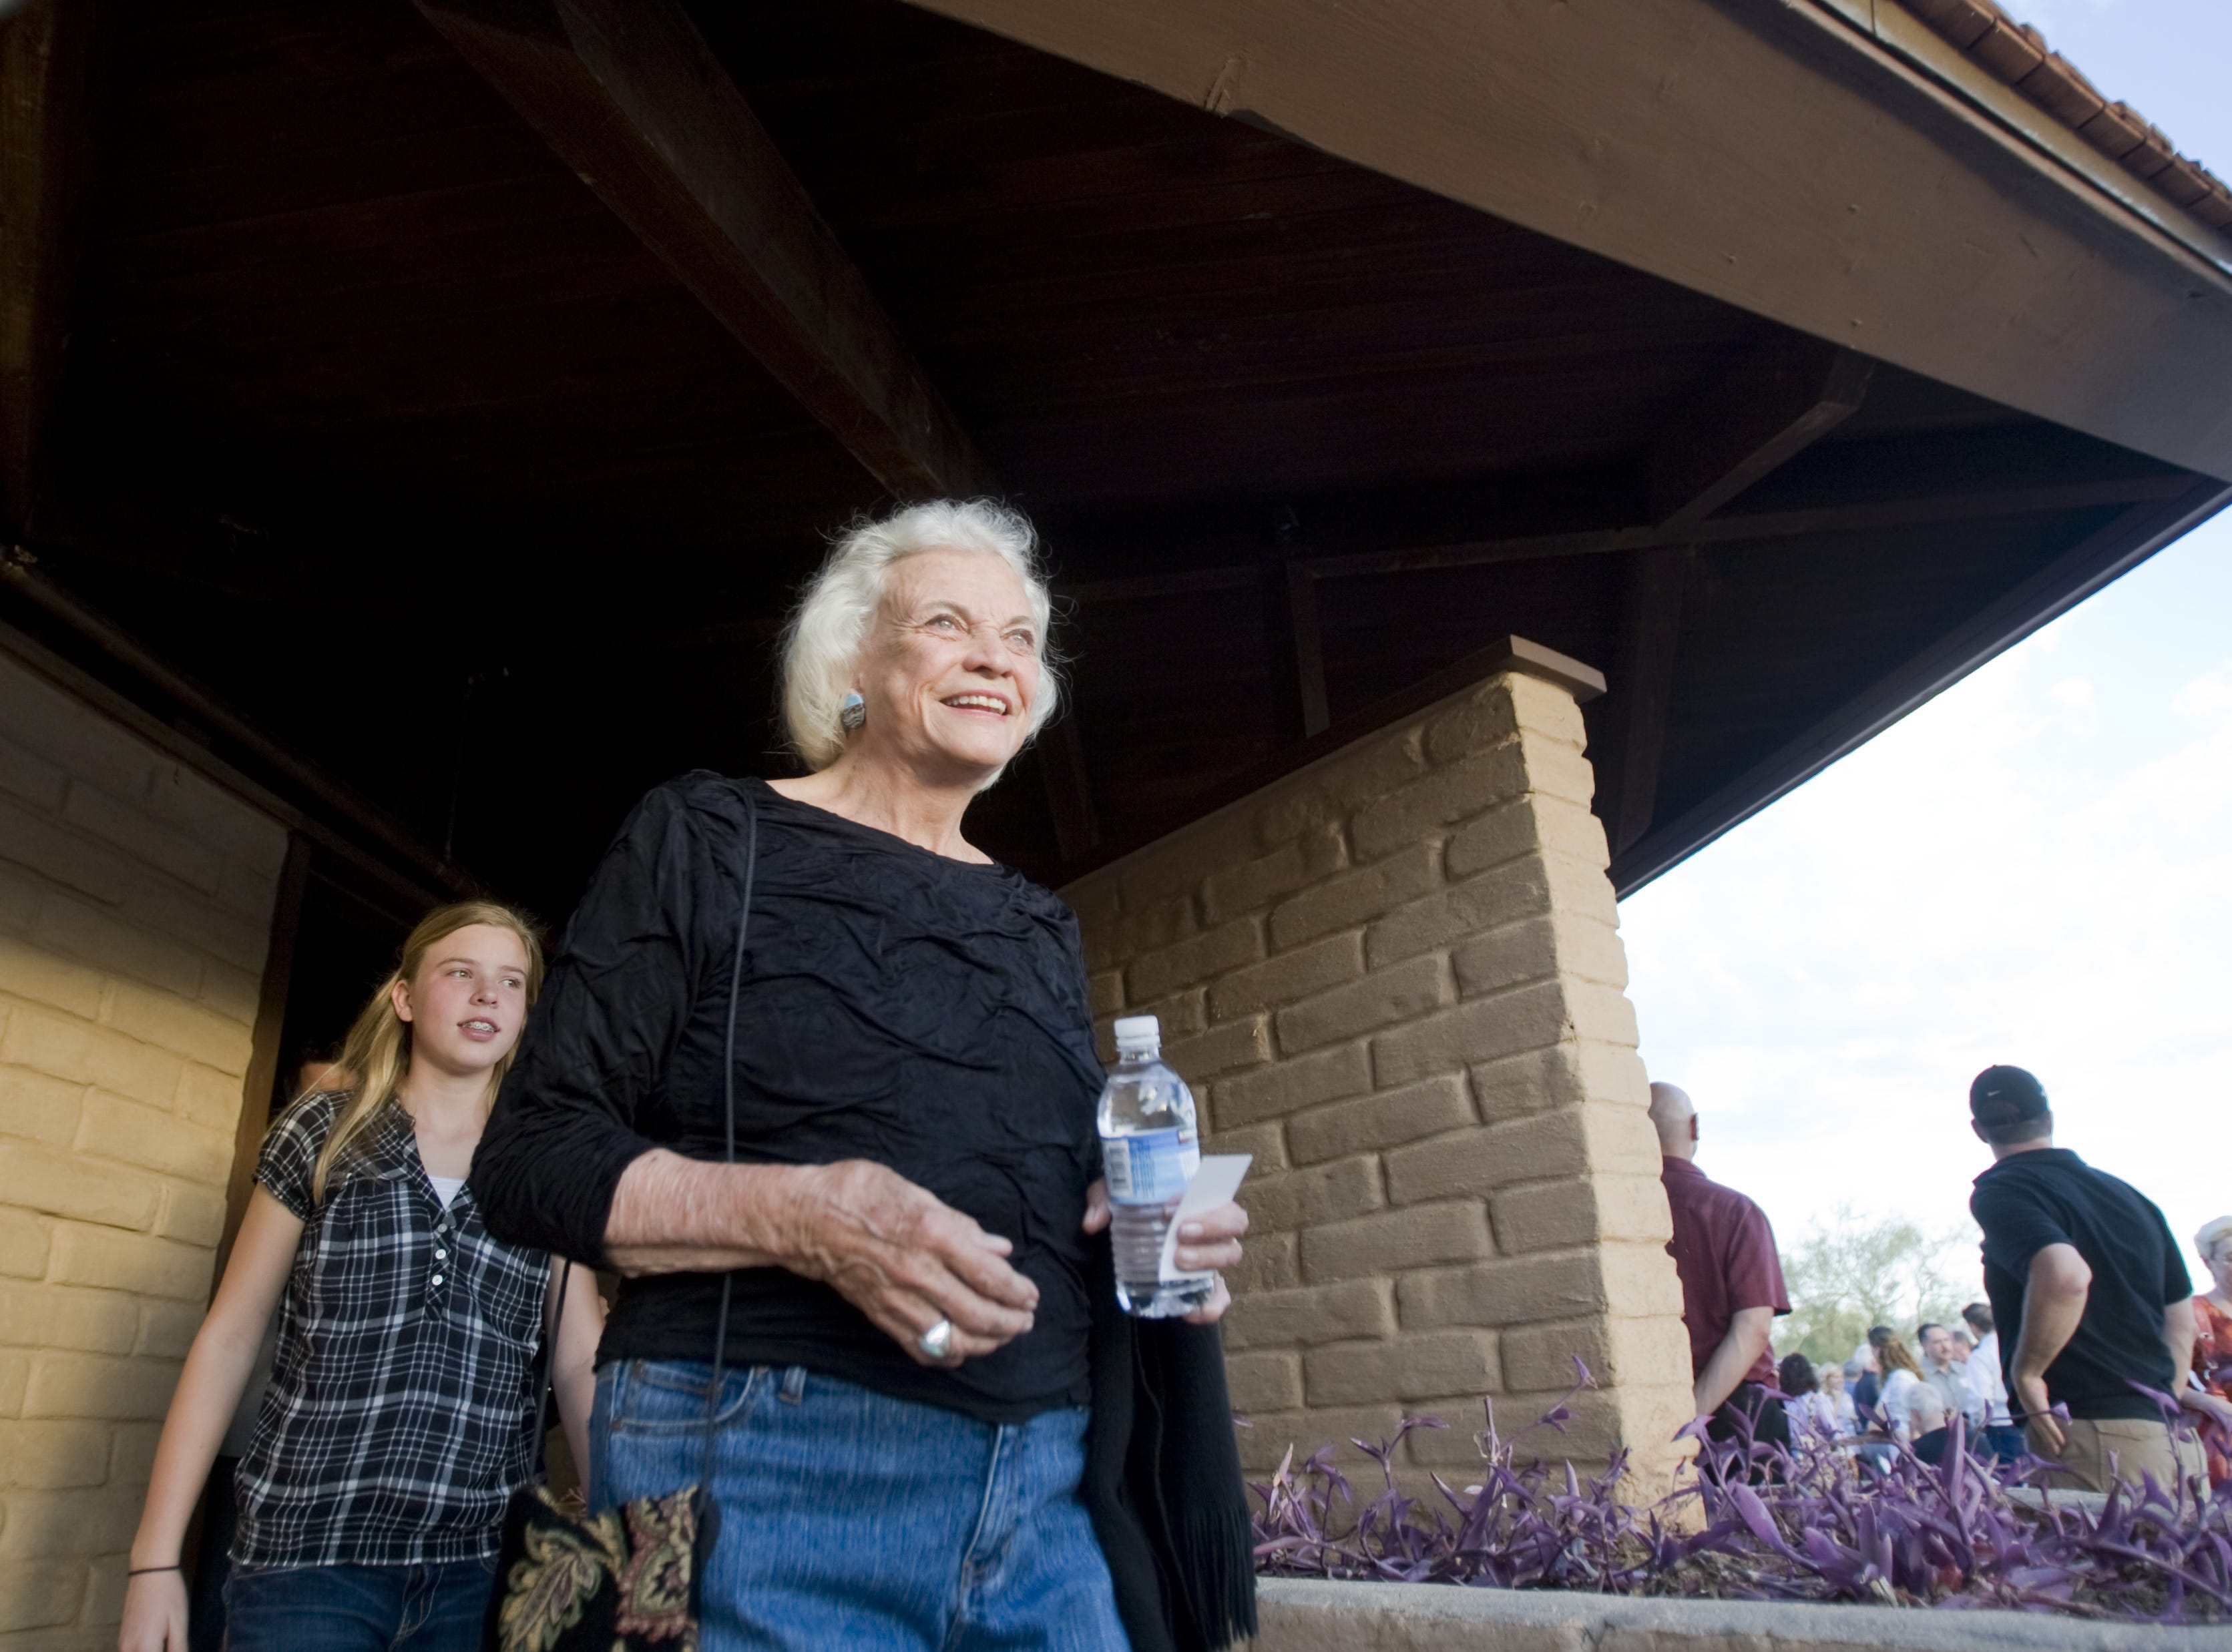 Former Supreme Court Justice Sandra Day O'Connor walks out of the O'Connor House at Papago Park in Tempe on Oct. 18, 2009.